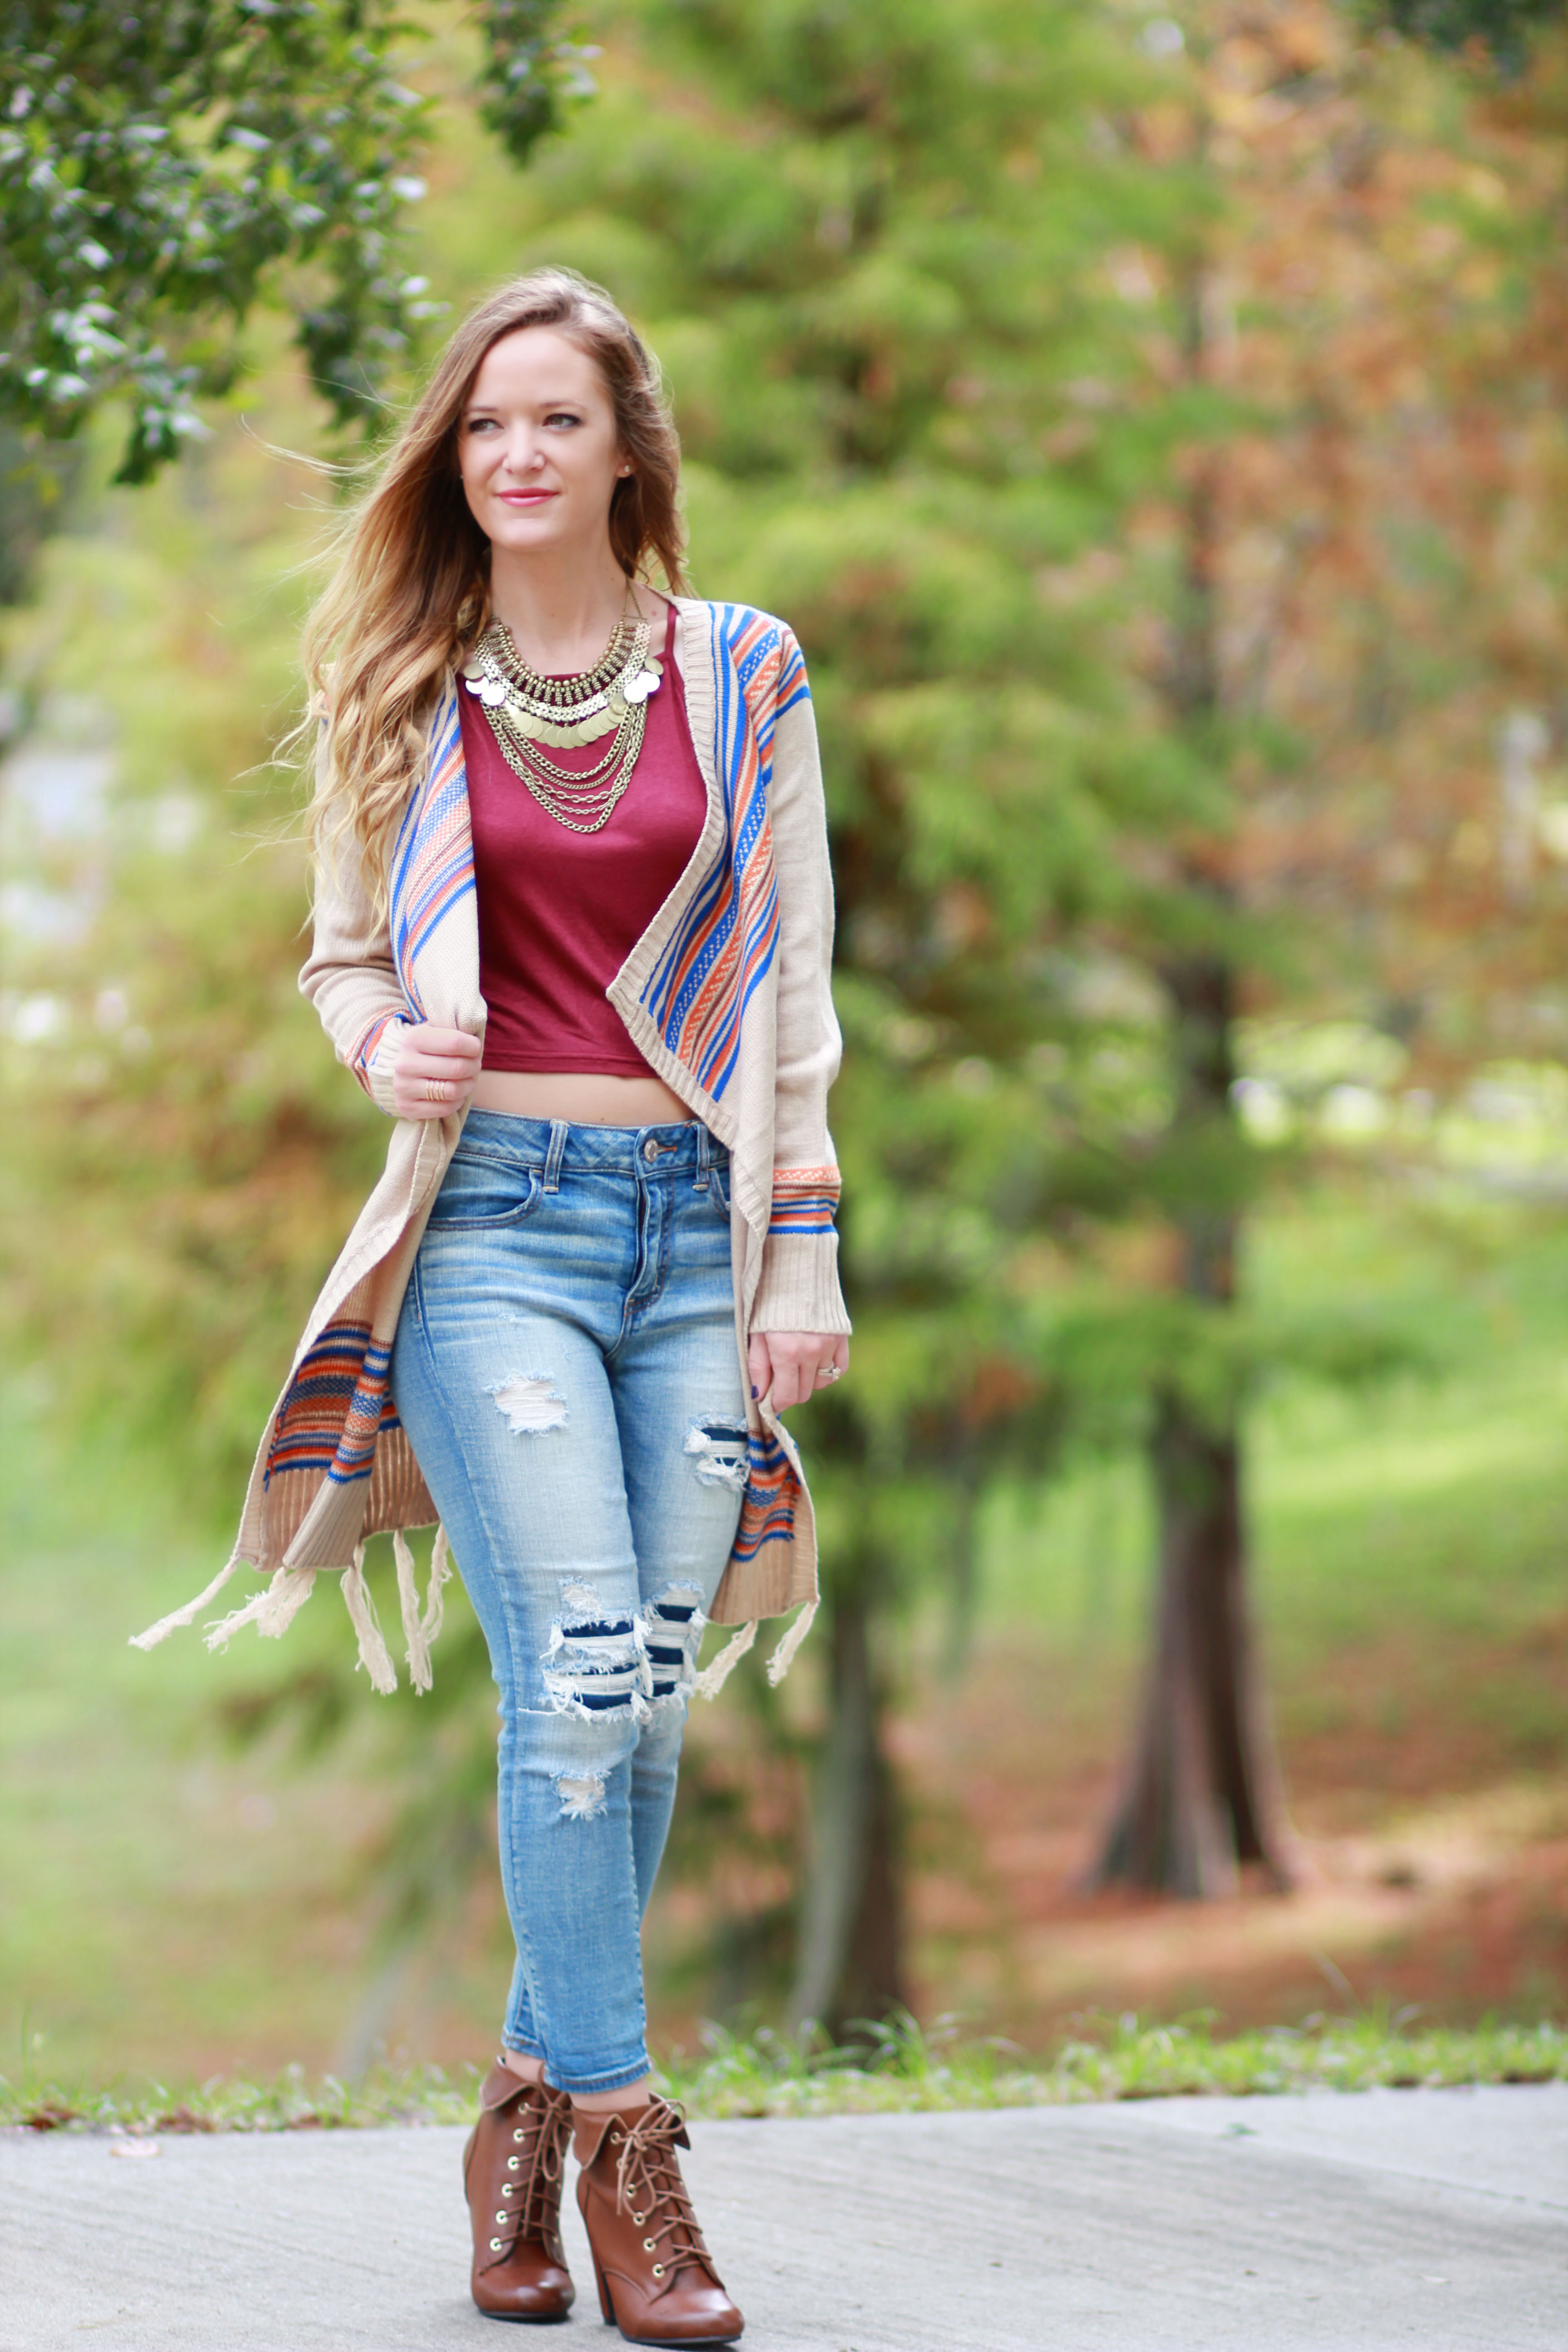 florida, orlando fashion blogger styles hippie chick boutique fringe cardigan, american eagle distressed jeans, blush boutique crop top and sugar pair booties for a casual fall outfit